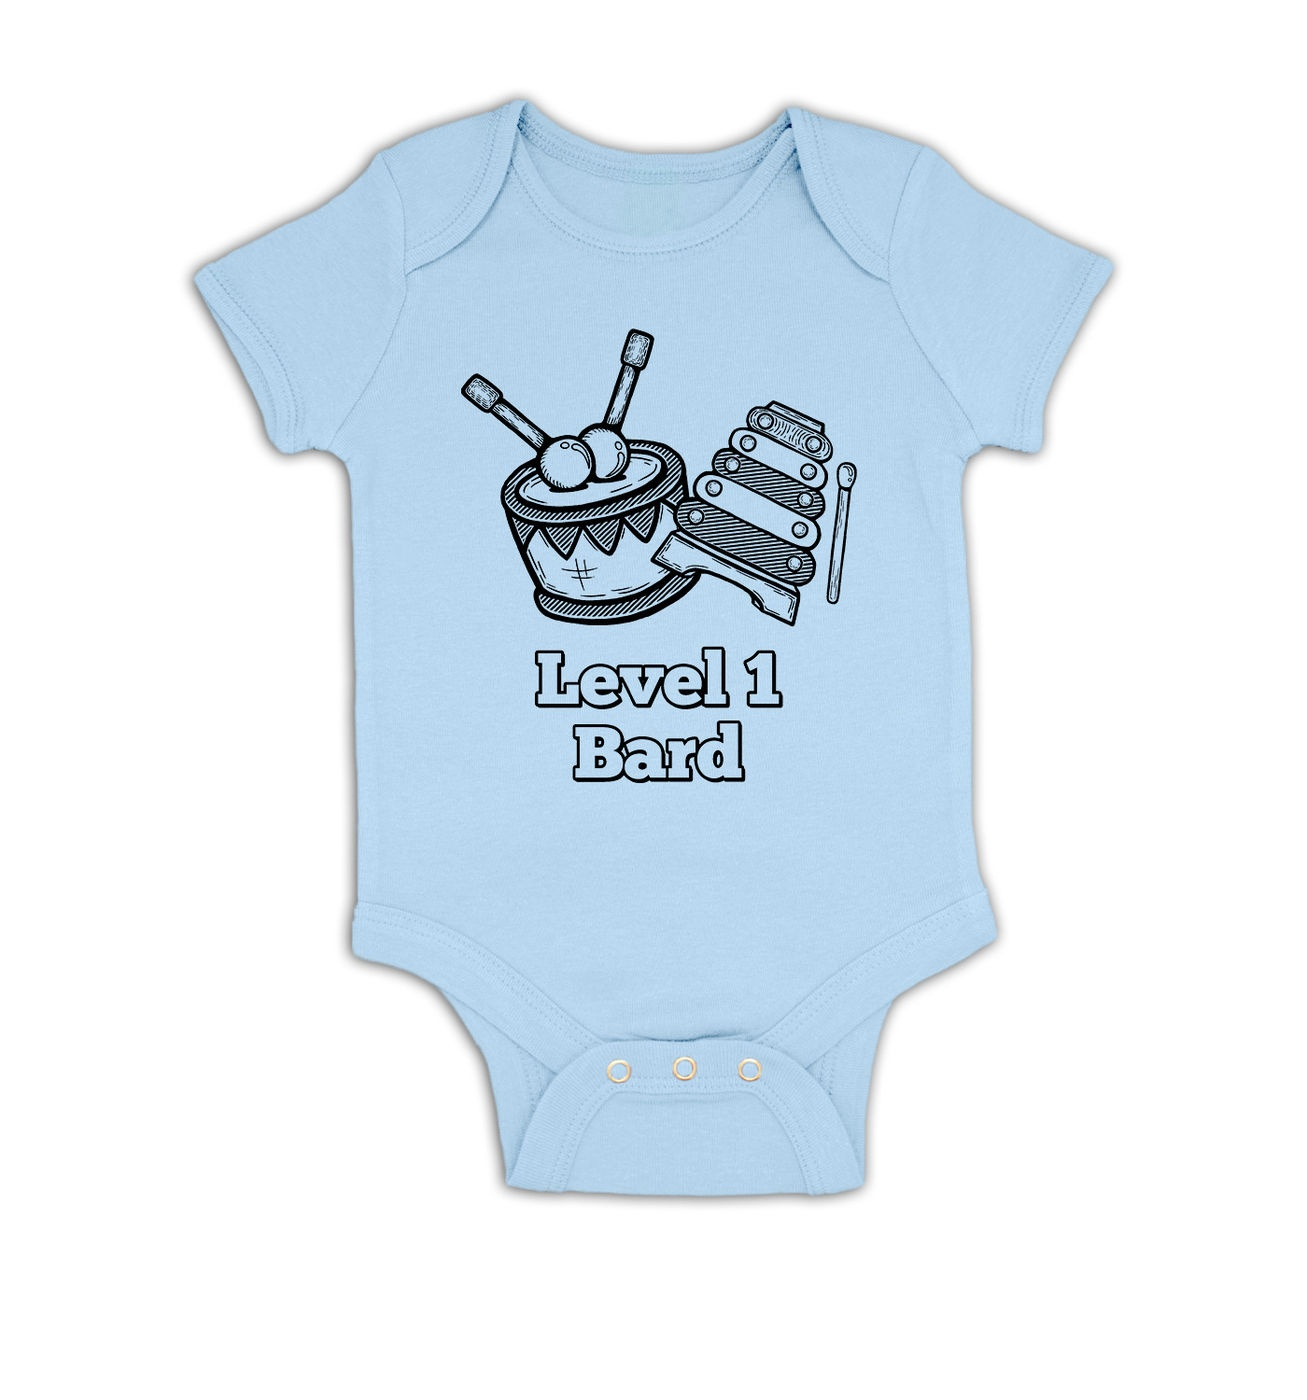 Level 1 Bard baby grow by Something Geeky